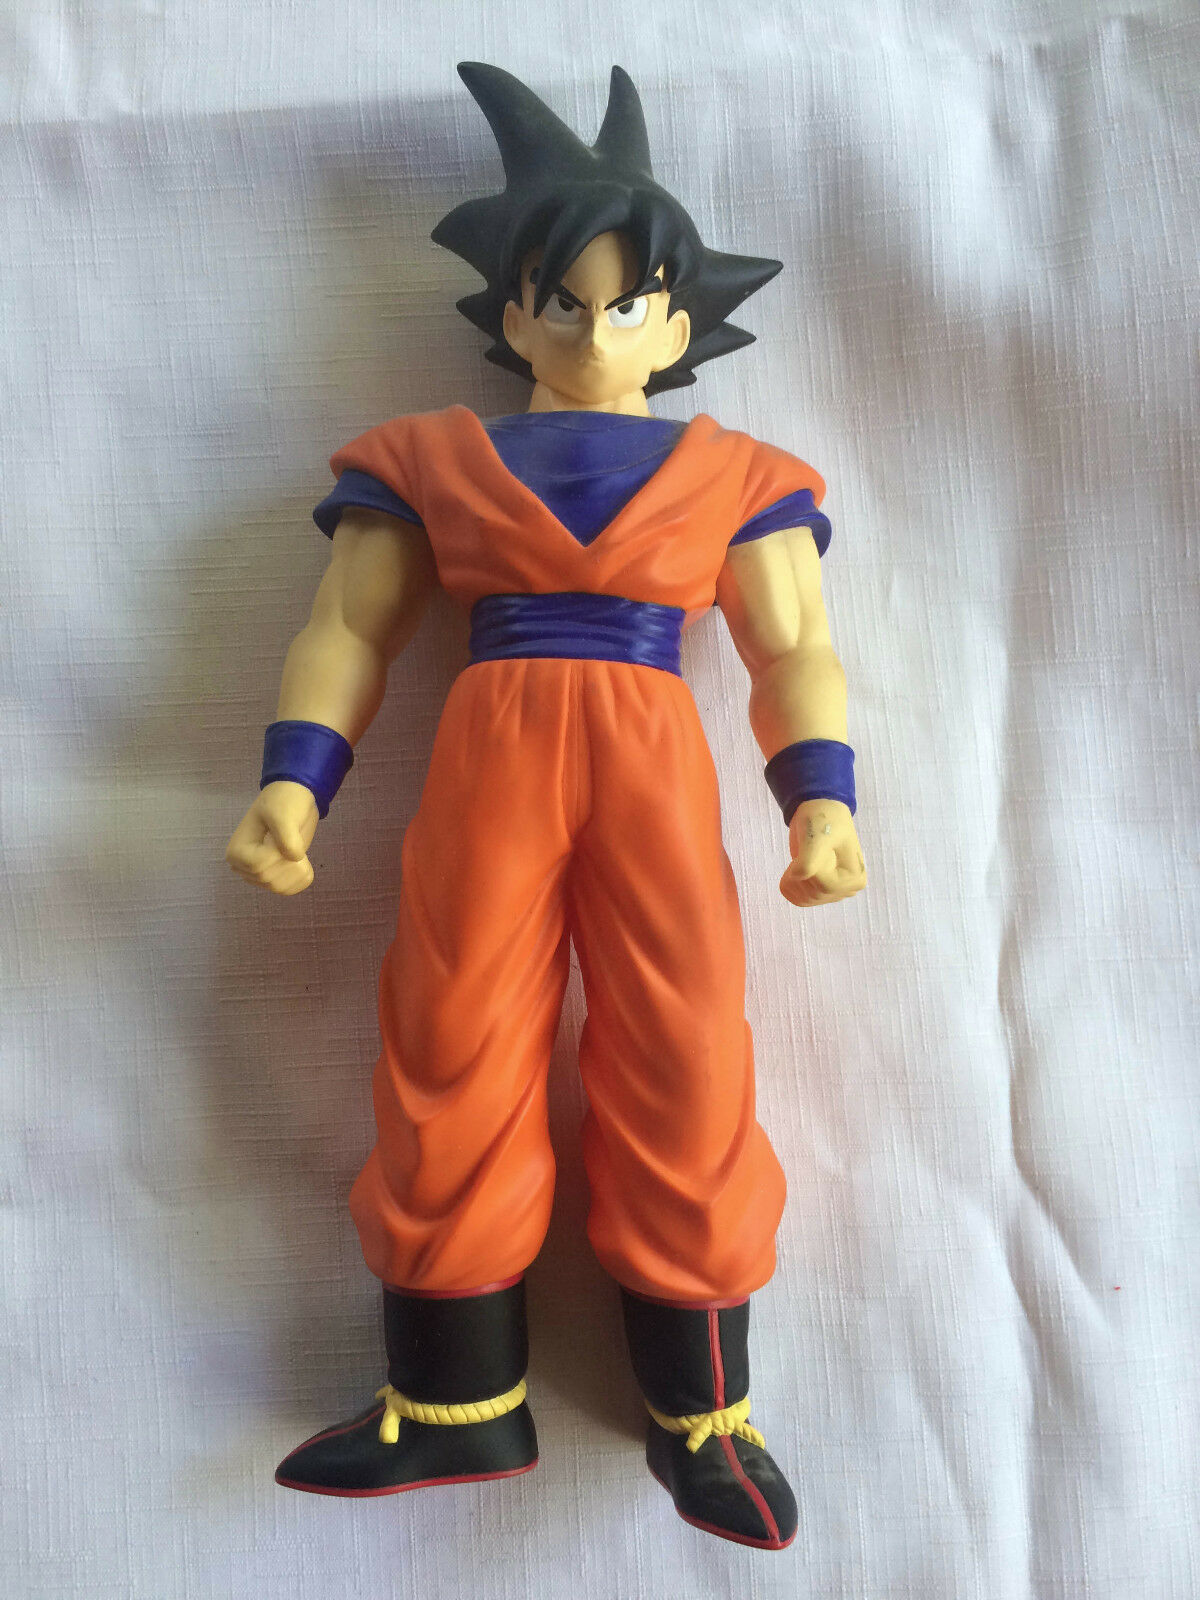 The Son Goku 2 Figure Rare 12  Anime Statue Dragonball Z Action Figure Collector